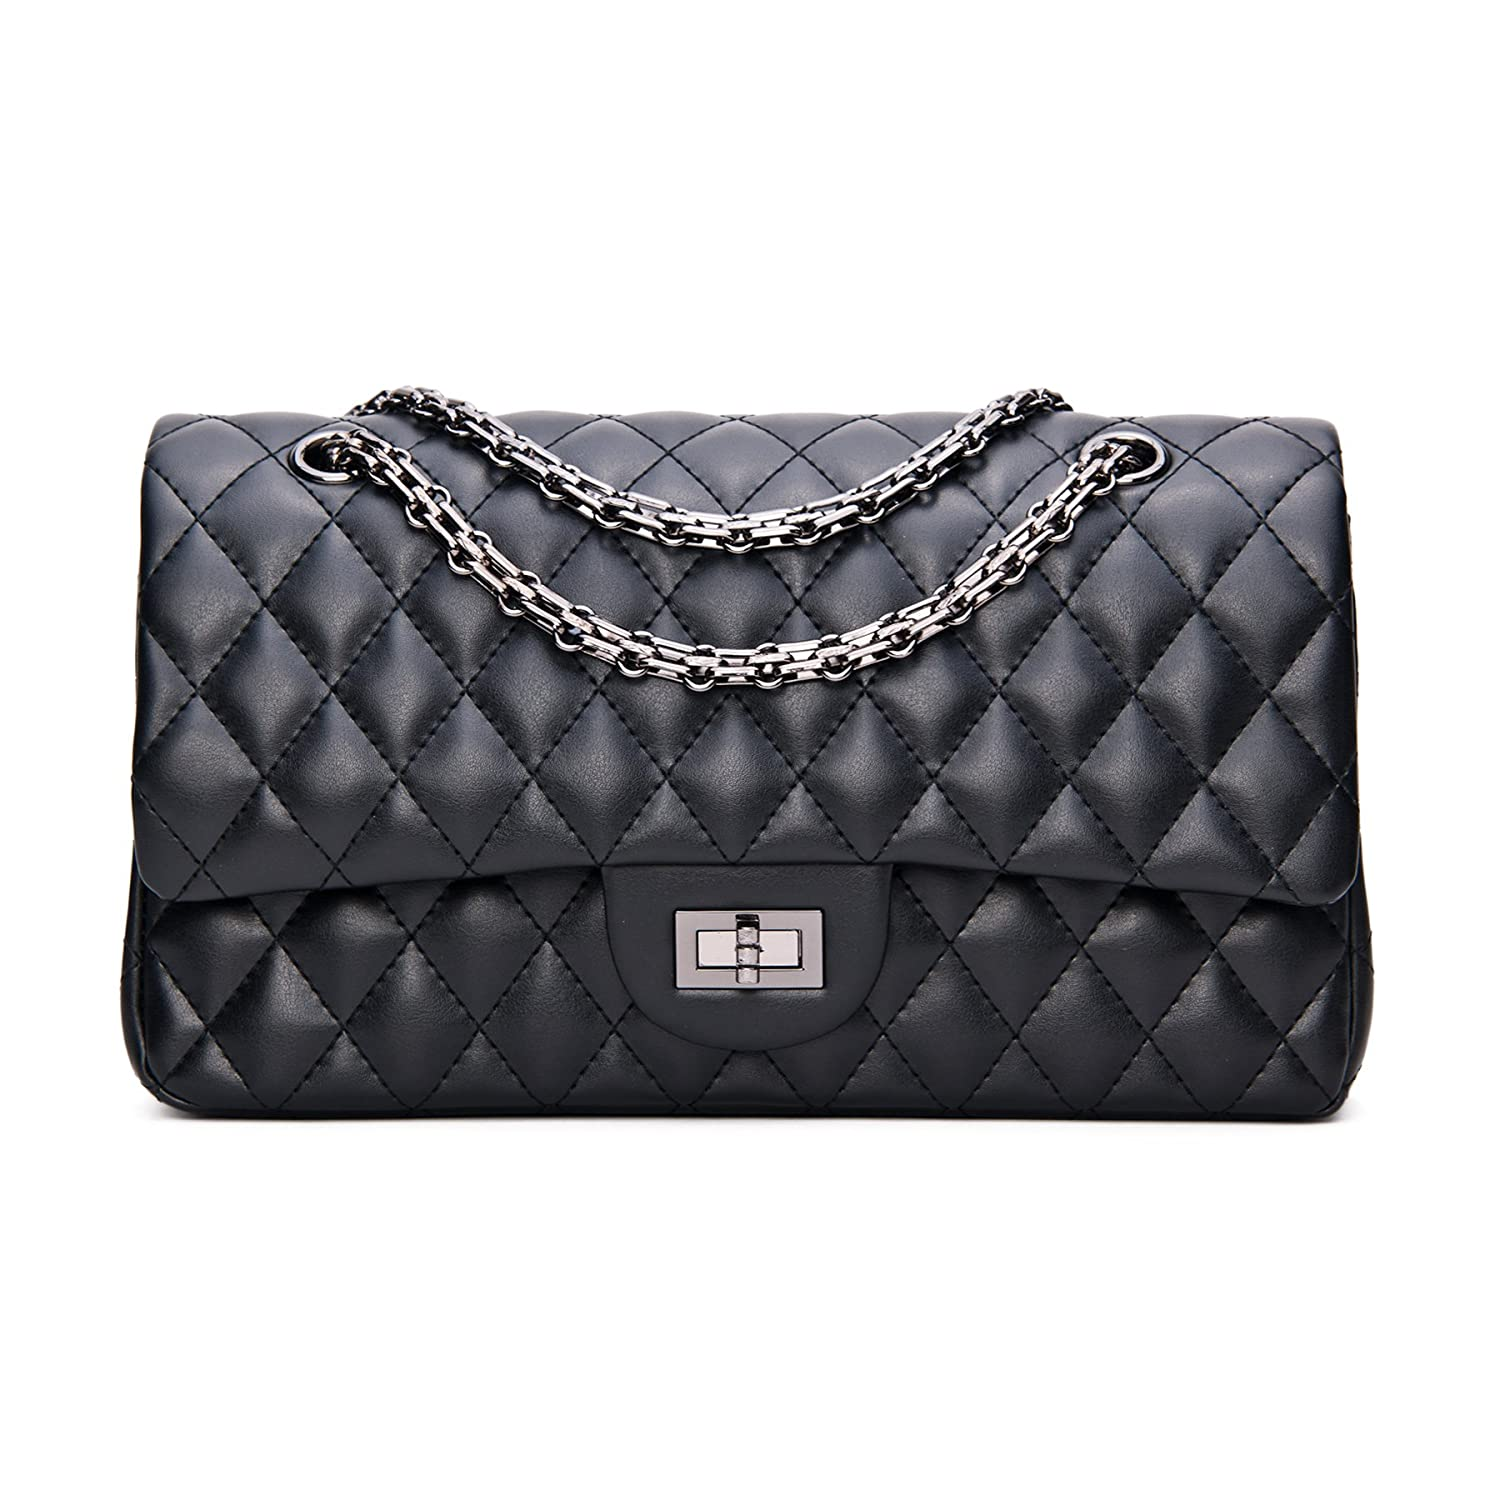 f1dcdc10739a SanMario Designer Handbags Lambskin Classic Quilted Chain Double Flap  Women s Crossbody Shoulder Bag (25.5cm 10